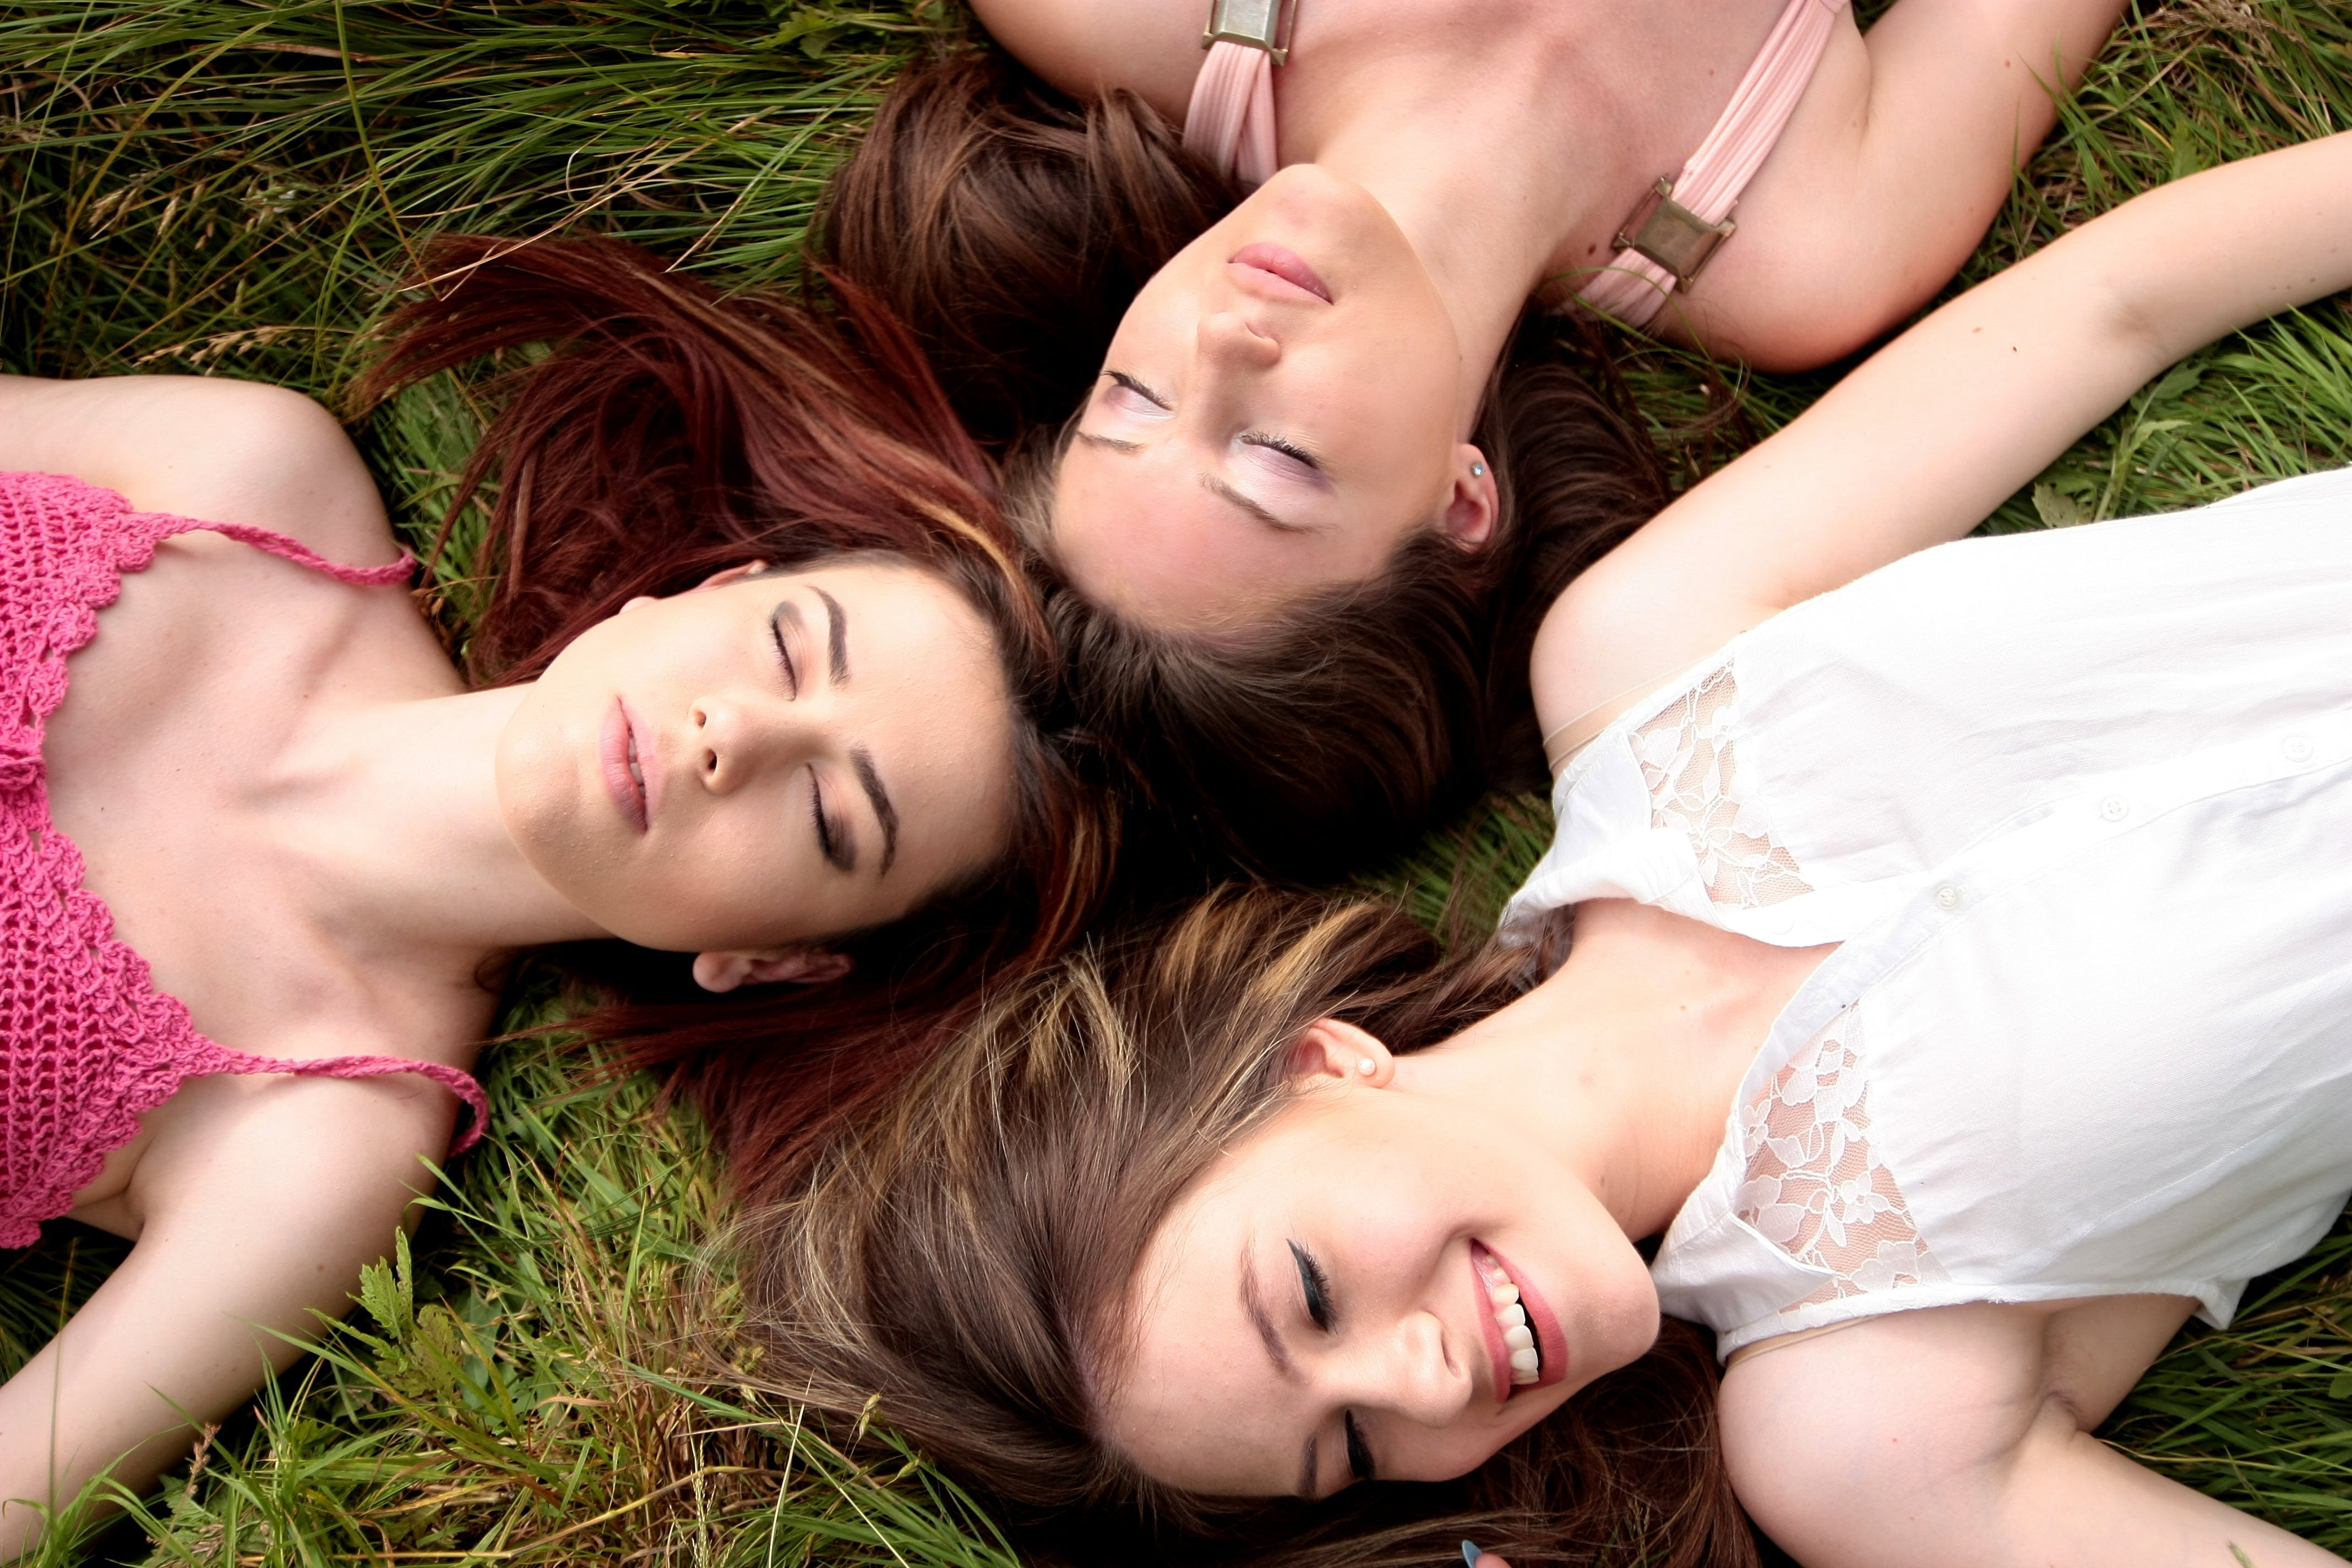 Three Women Lying on Green Grass